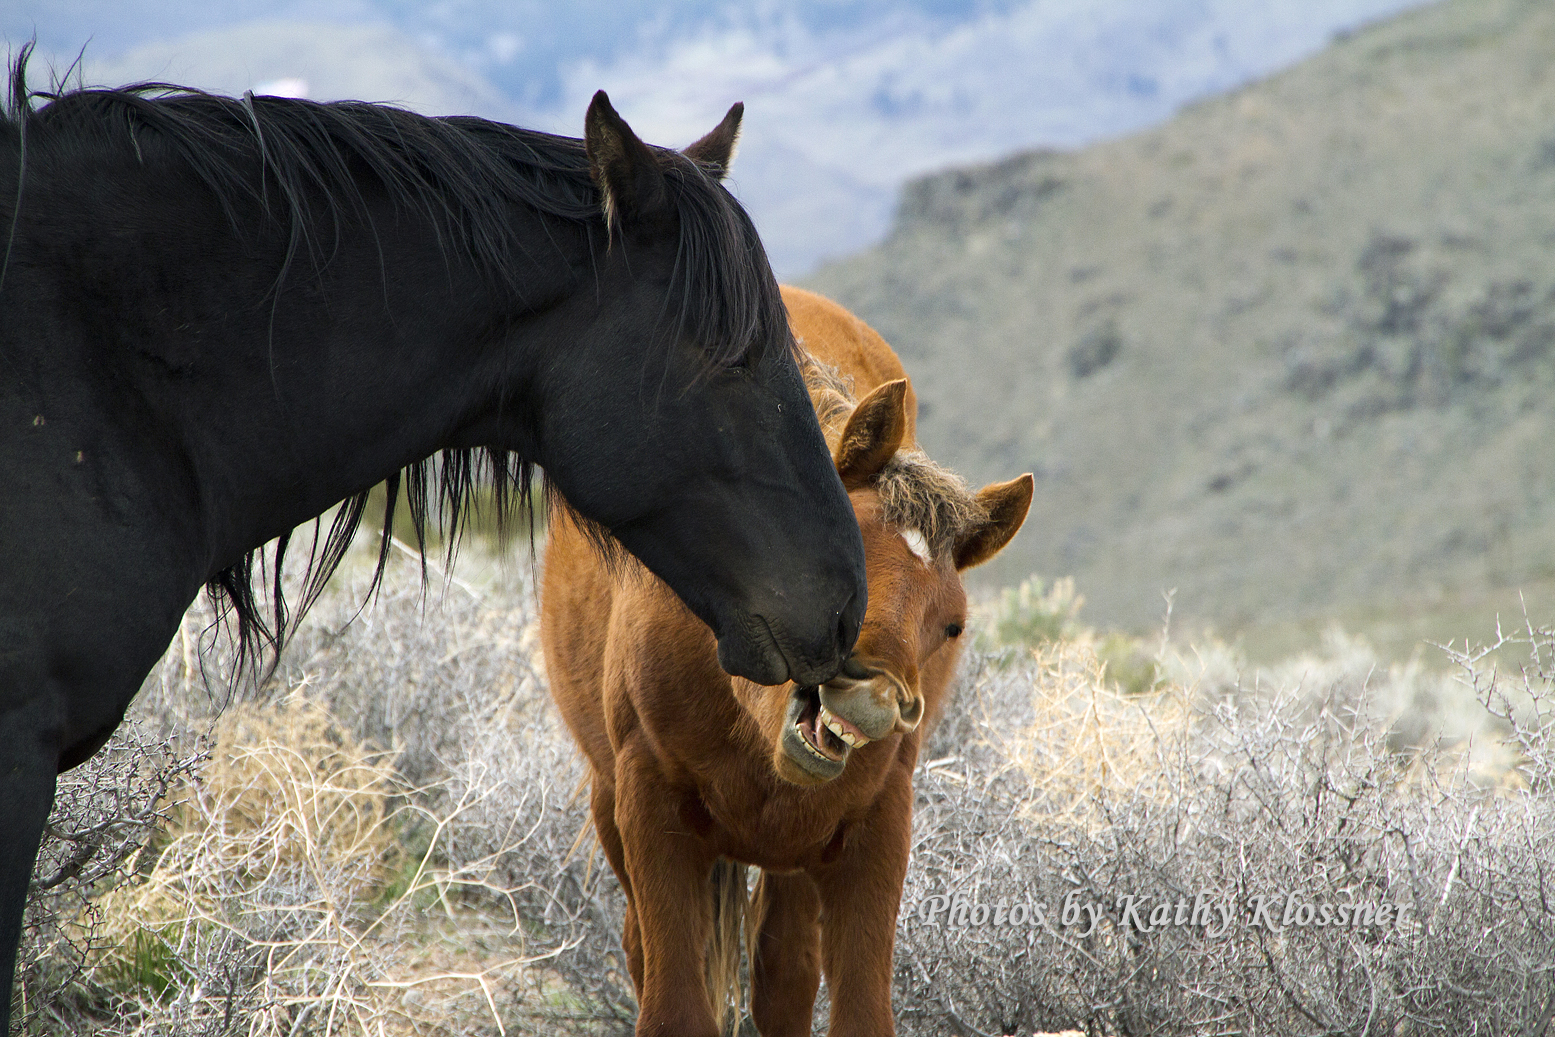 Wild Mustangs Near Carson City Images By Kathy Klossner